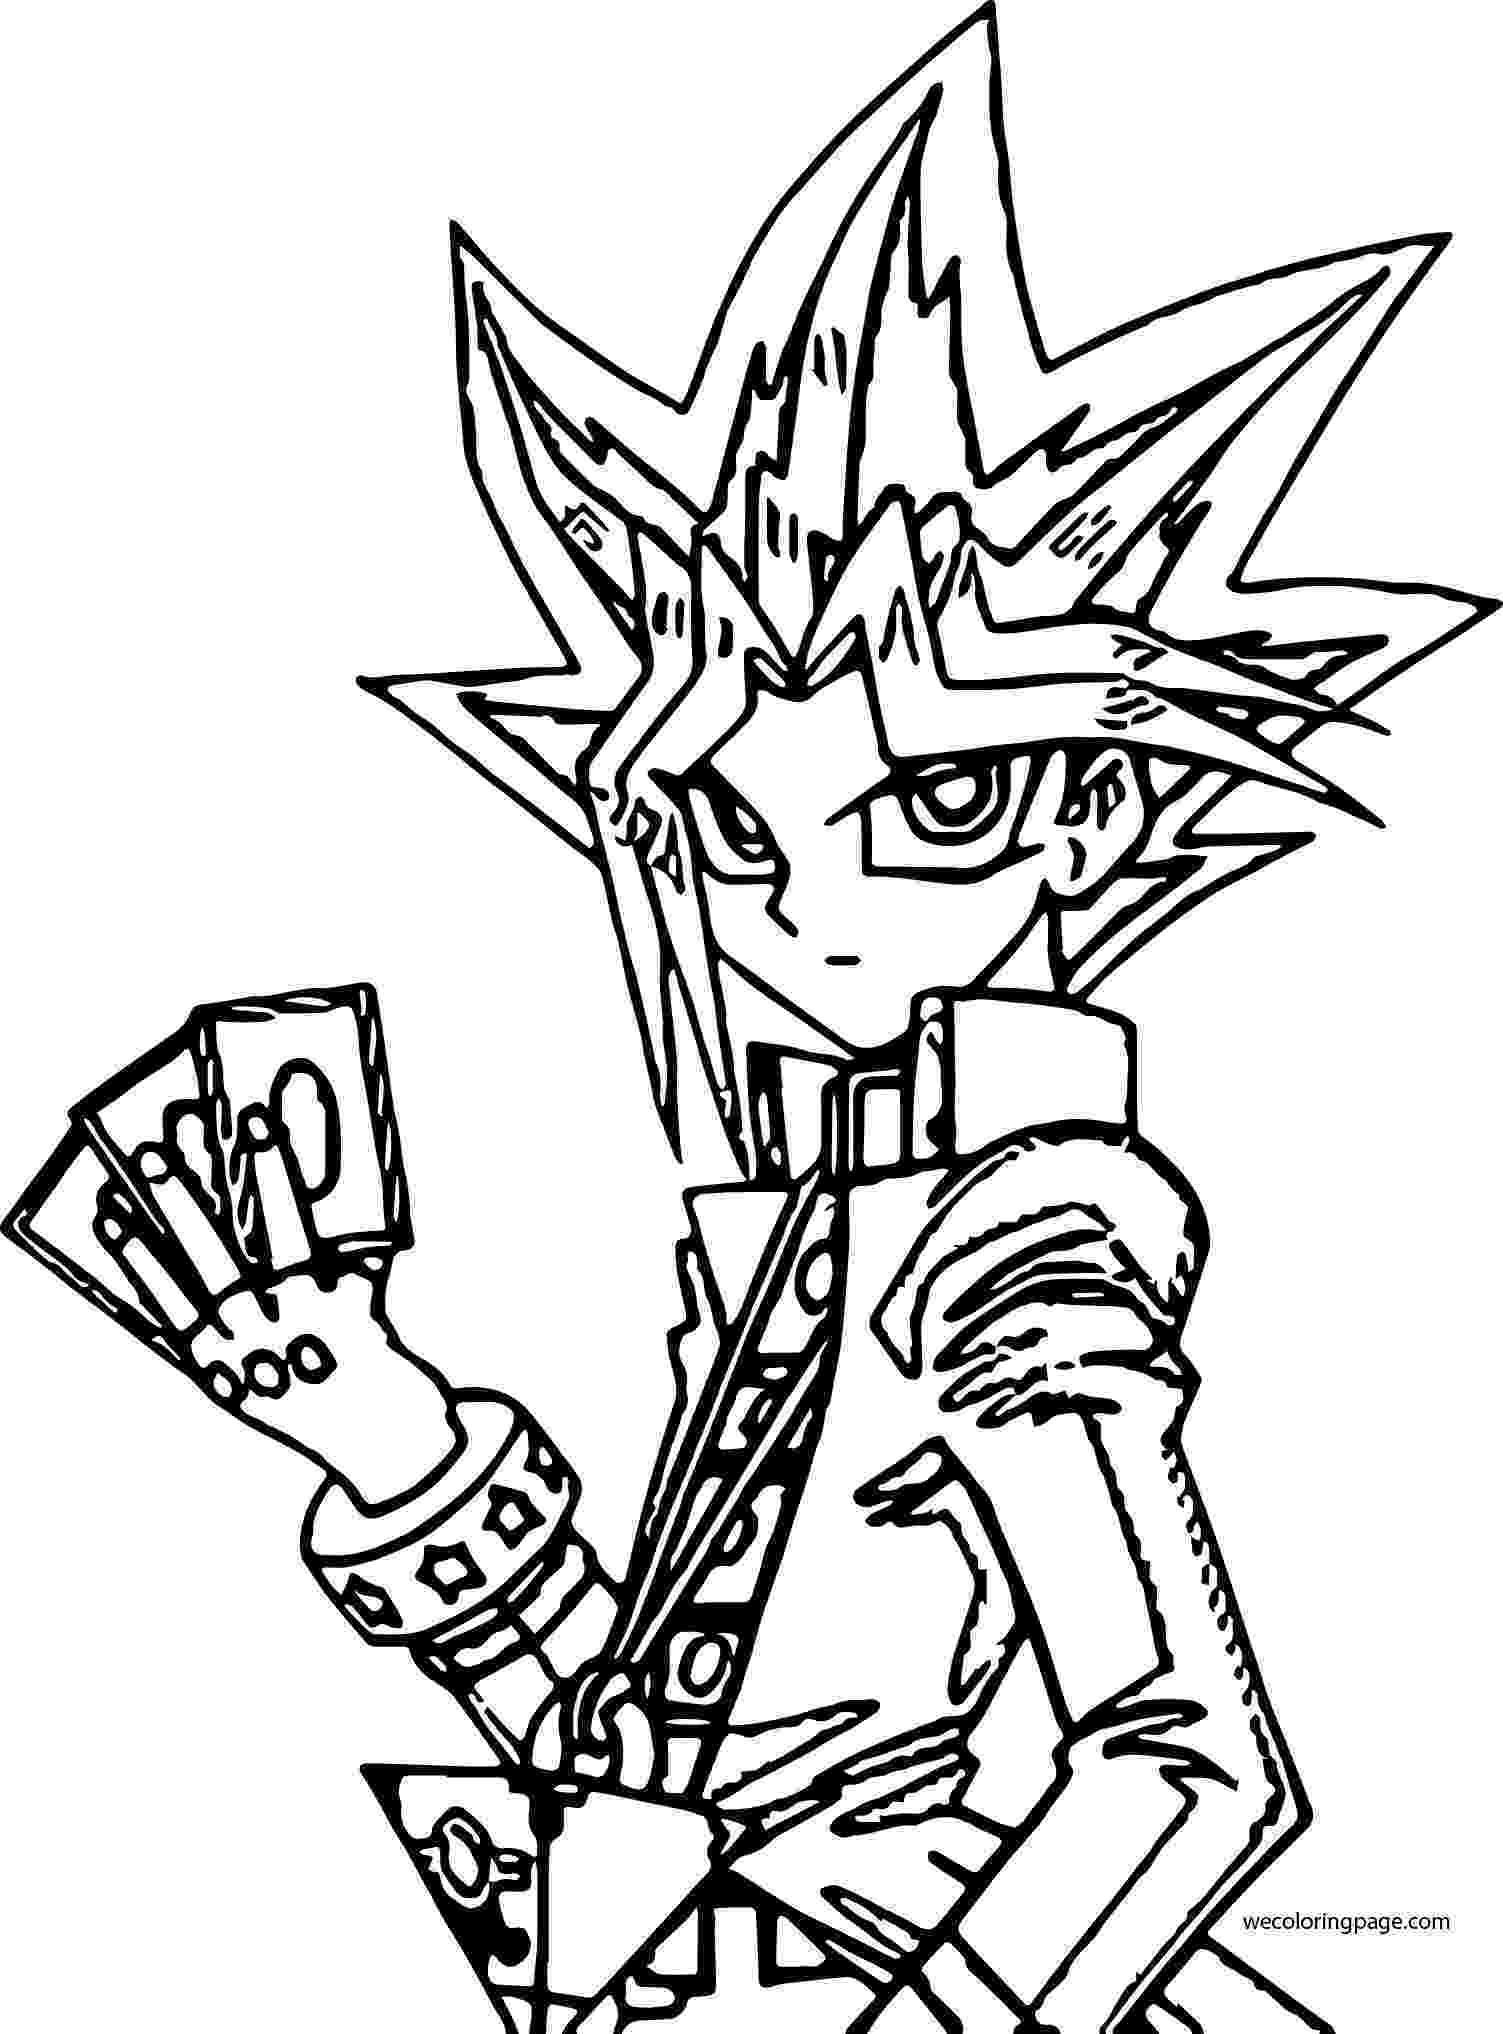 coloring pages yugioh yu gi oh coloring pages to download and print for free yugioh pages coloring